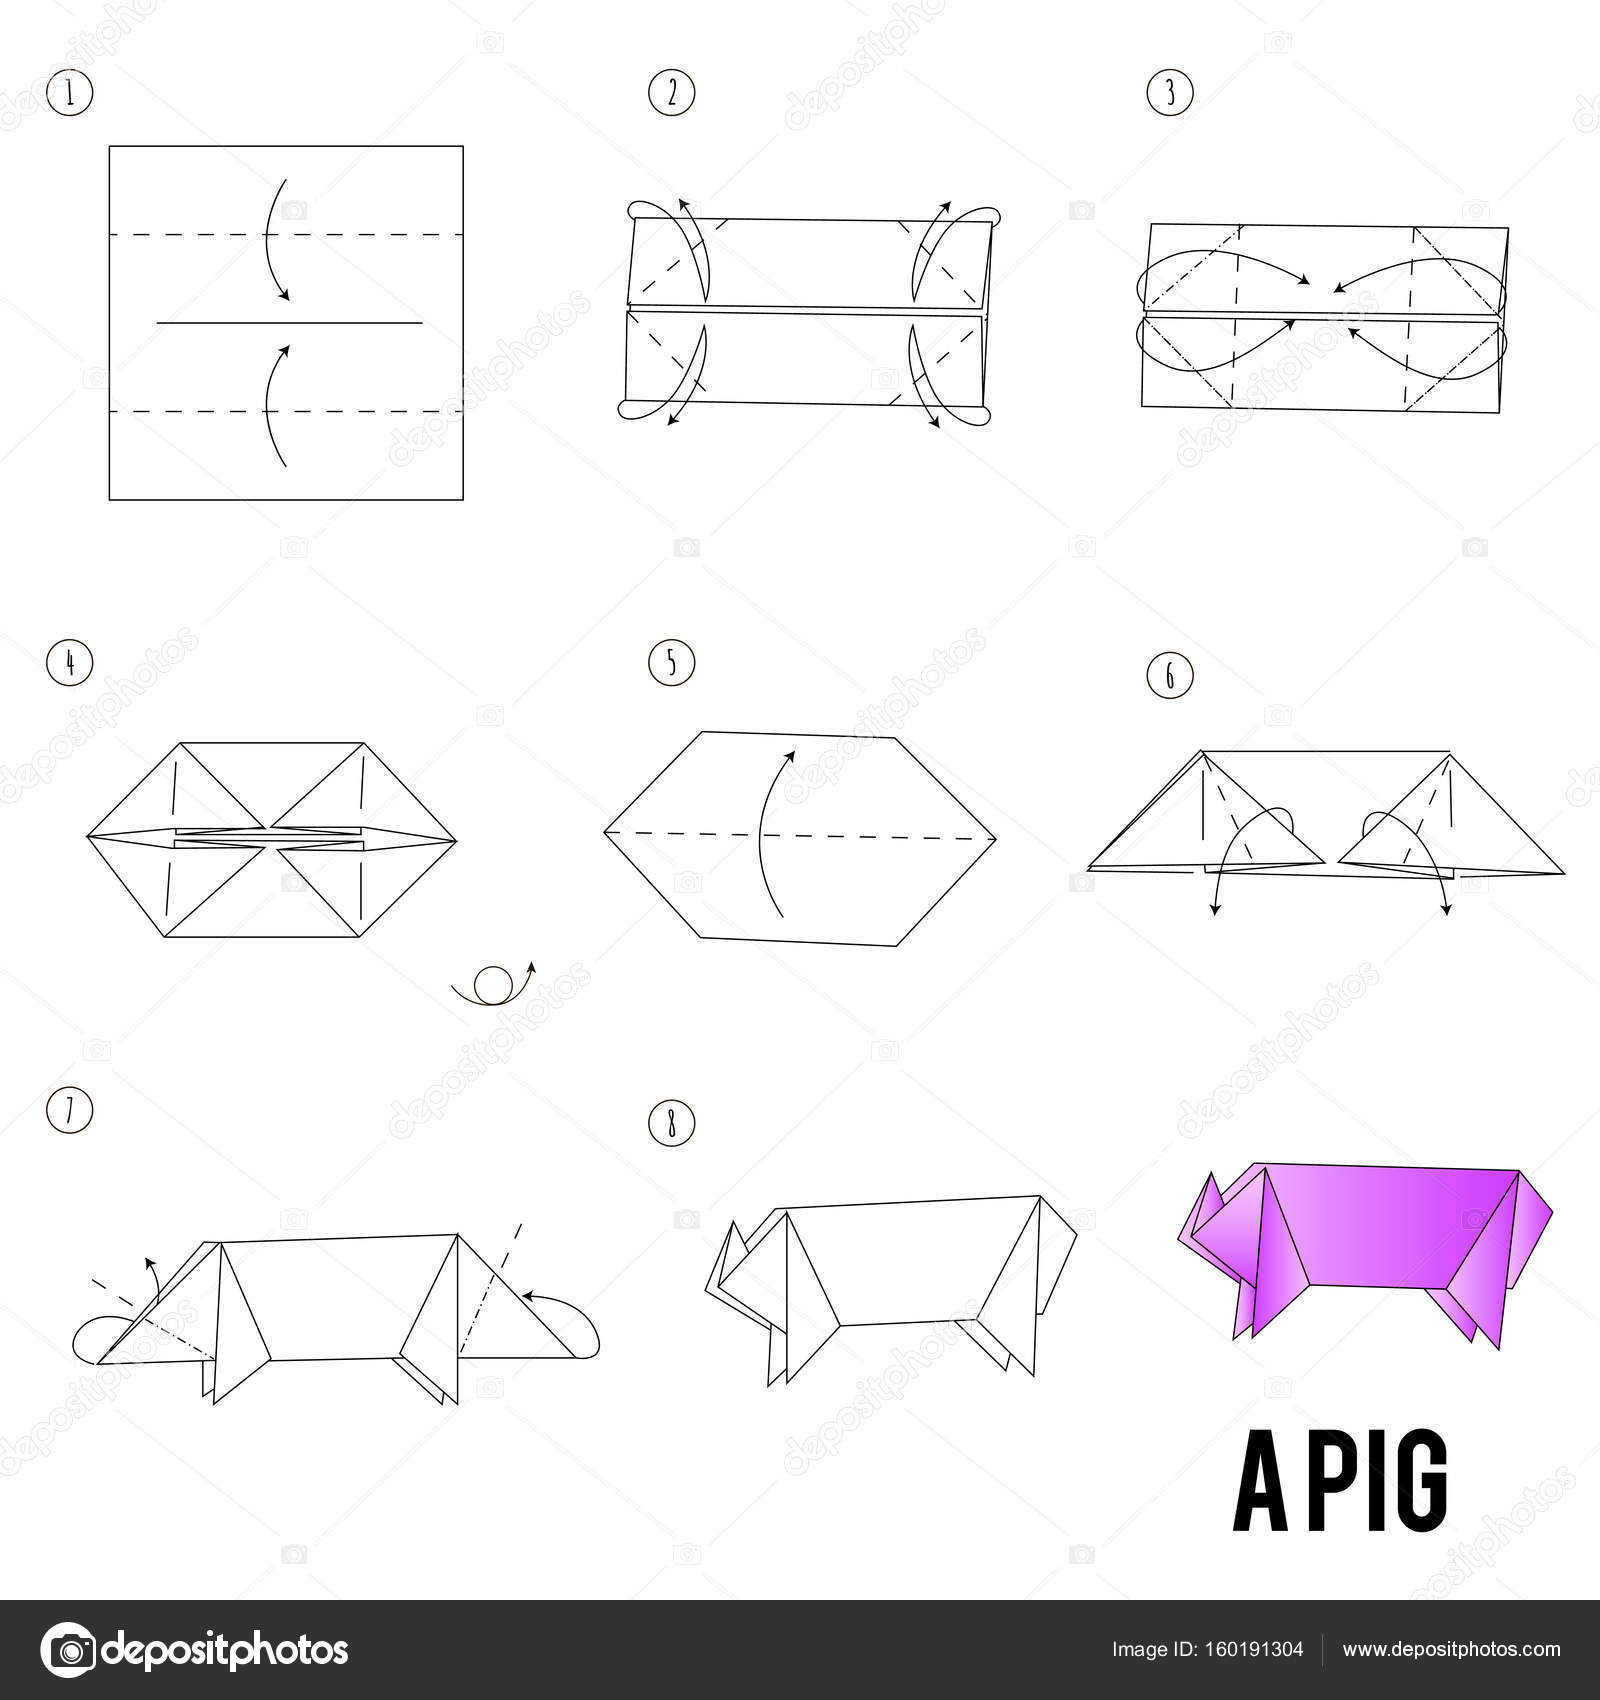 Step by step instructions how to make origami a bird stock step by step instructions how to make origami a pig vector by irisimkayandex pooptronica